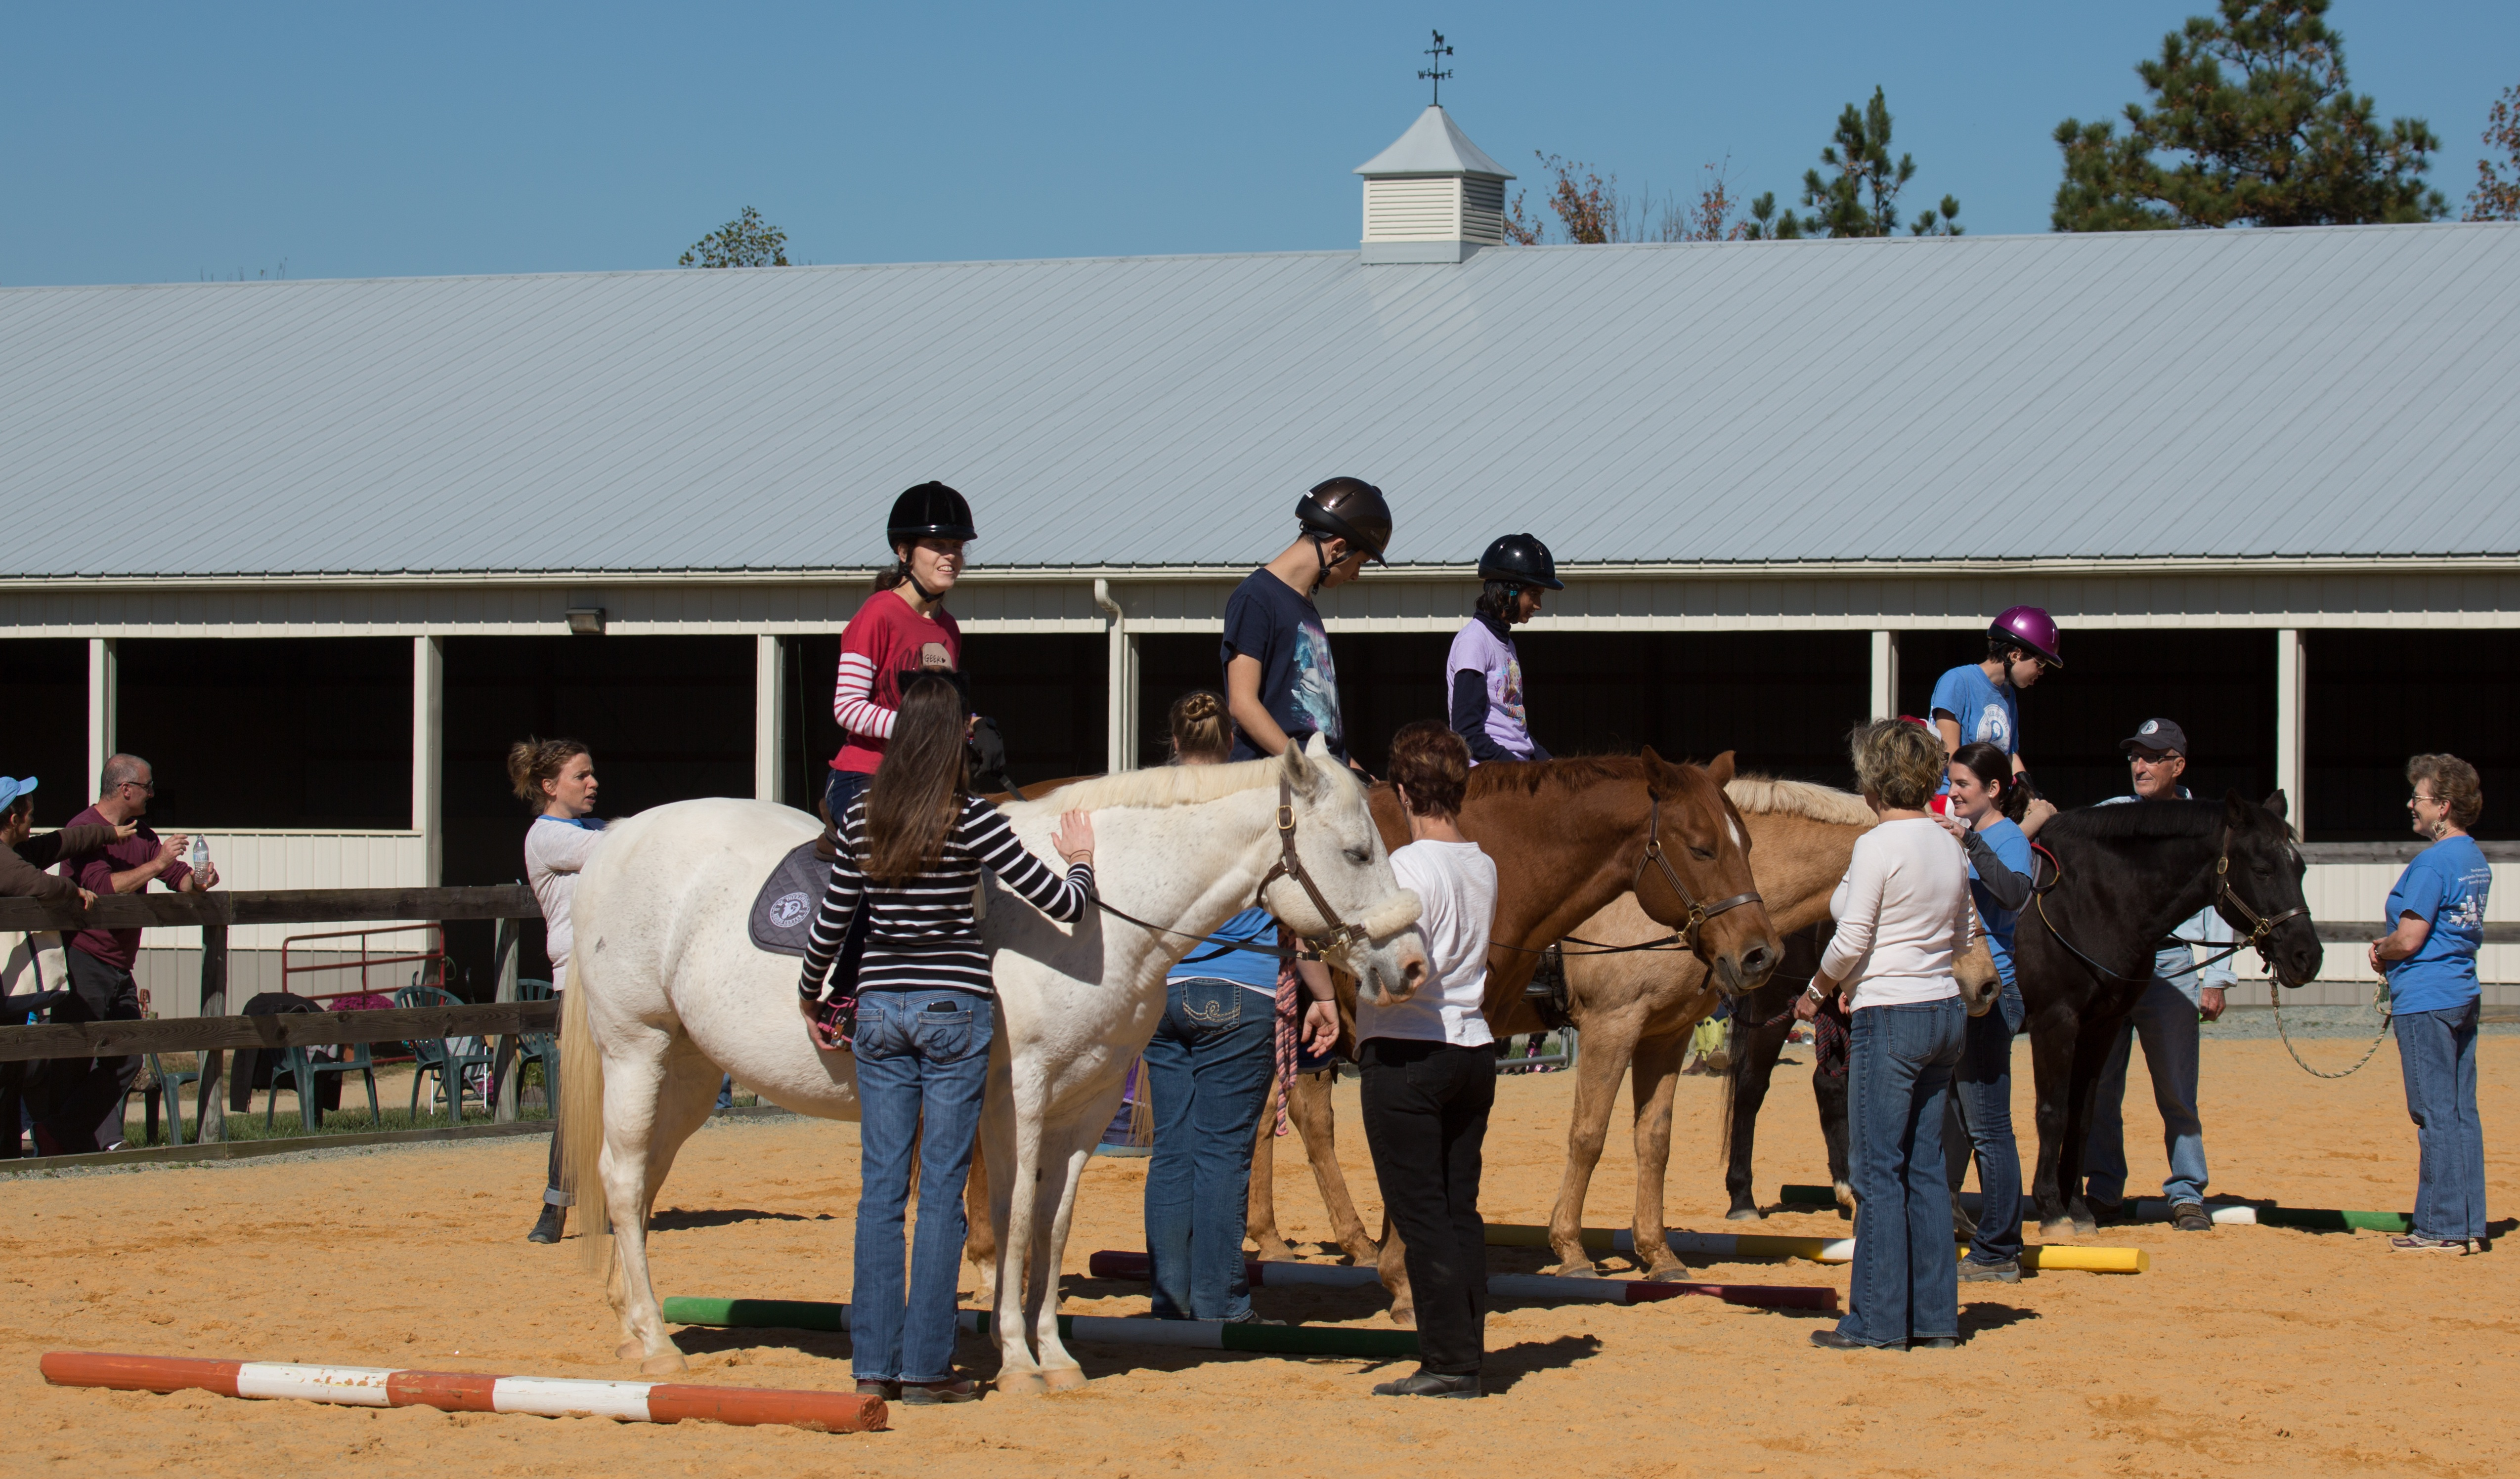 Eileen, Jackson, Laila and Colleen patiently awaiting judging results at NCTRC's Fall Festival and Horse Show. (Photo by Jonathan Van Ark)